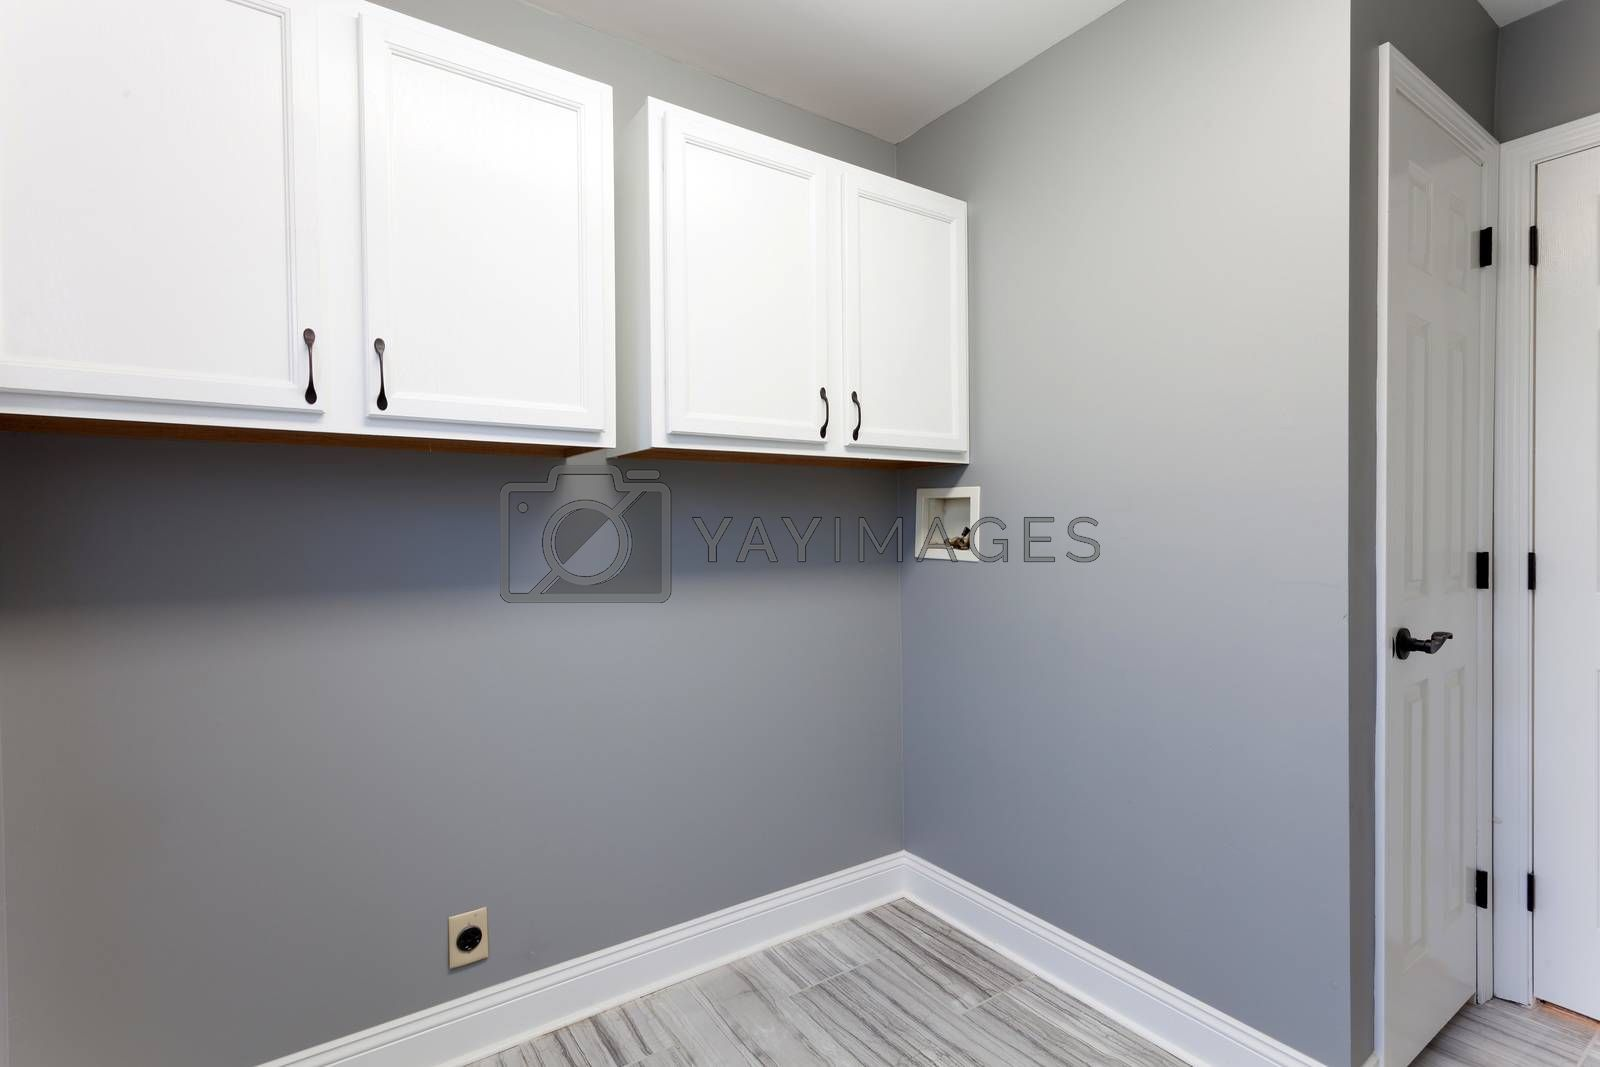 Empty laundry room setup with electrical plumbling hookups and cabinets in a modern home.